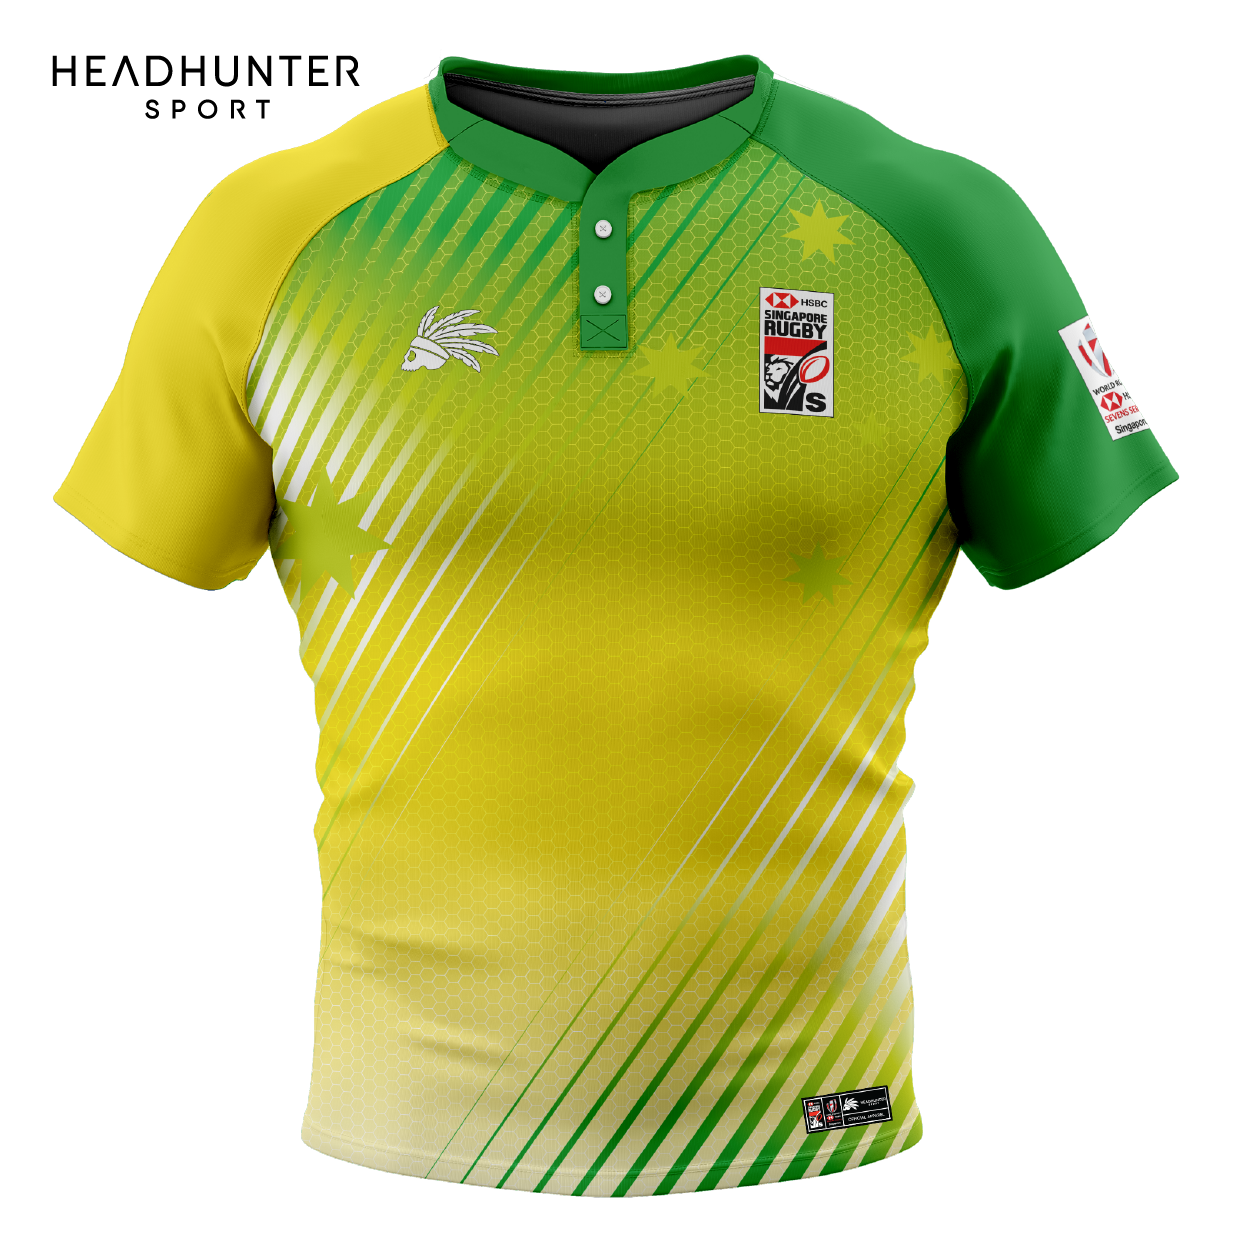 HSBC RUGBY 7S SERIES SINGAPORE 2019 MERCHANDISE AUSTRALIA JERSEY